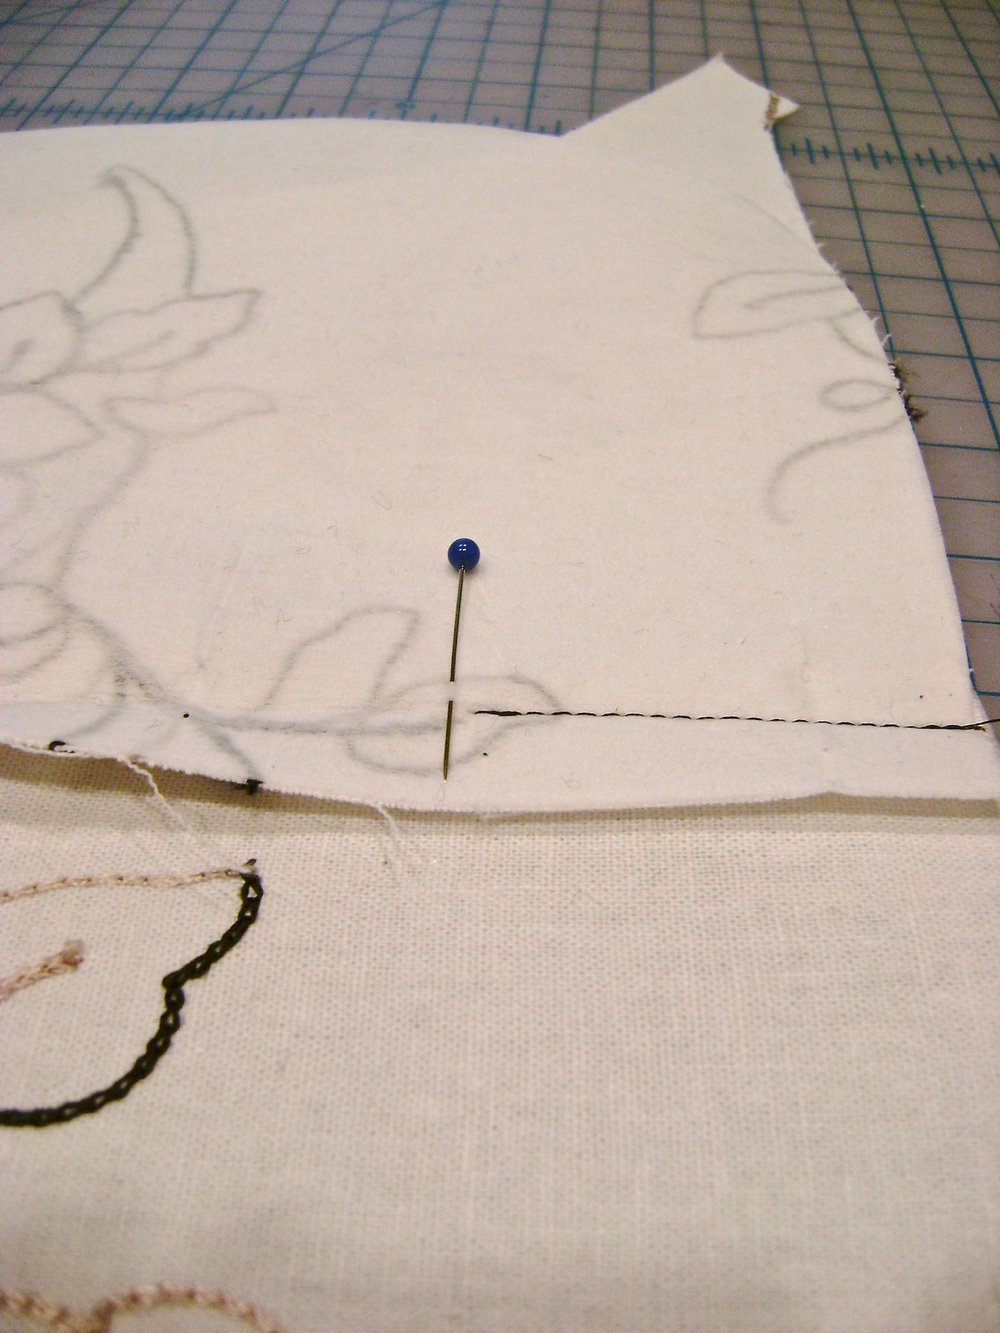 step 2 - On both sides of purse, stitch the wrong side of the pocket from the outer edge of the purse to the red dot only, leaving the center of the seam open for the zipper.